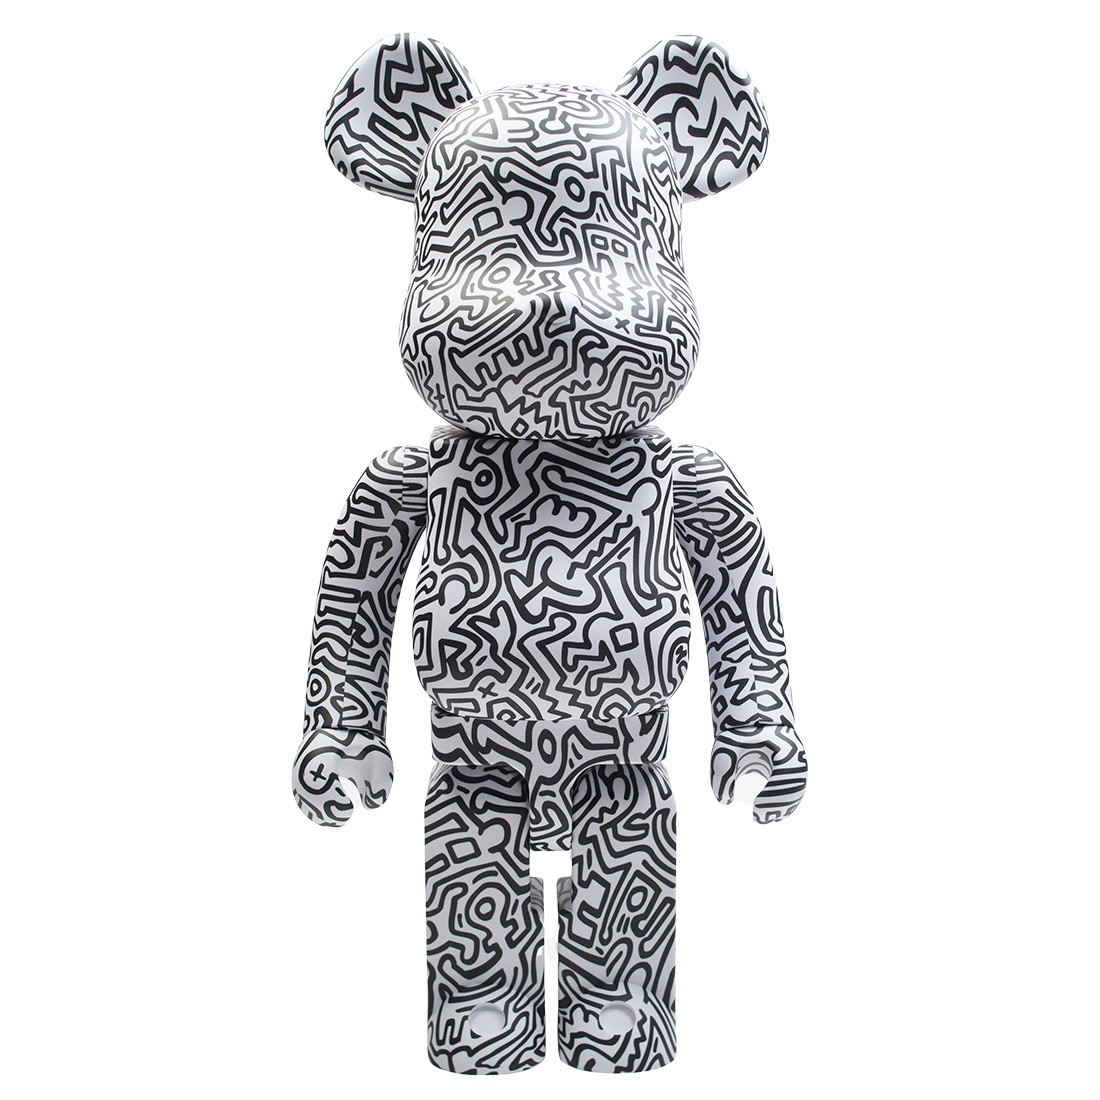 Medicom Keith Haring #4 1000% Bearbrick Figure (white)